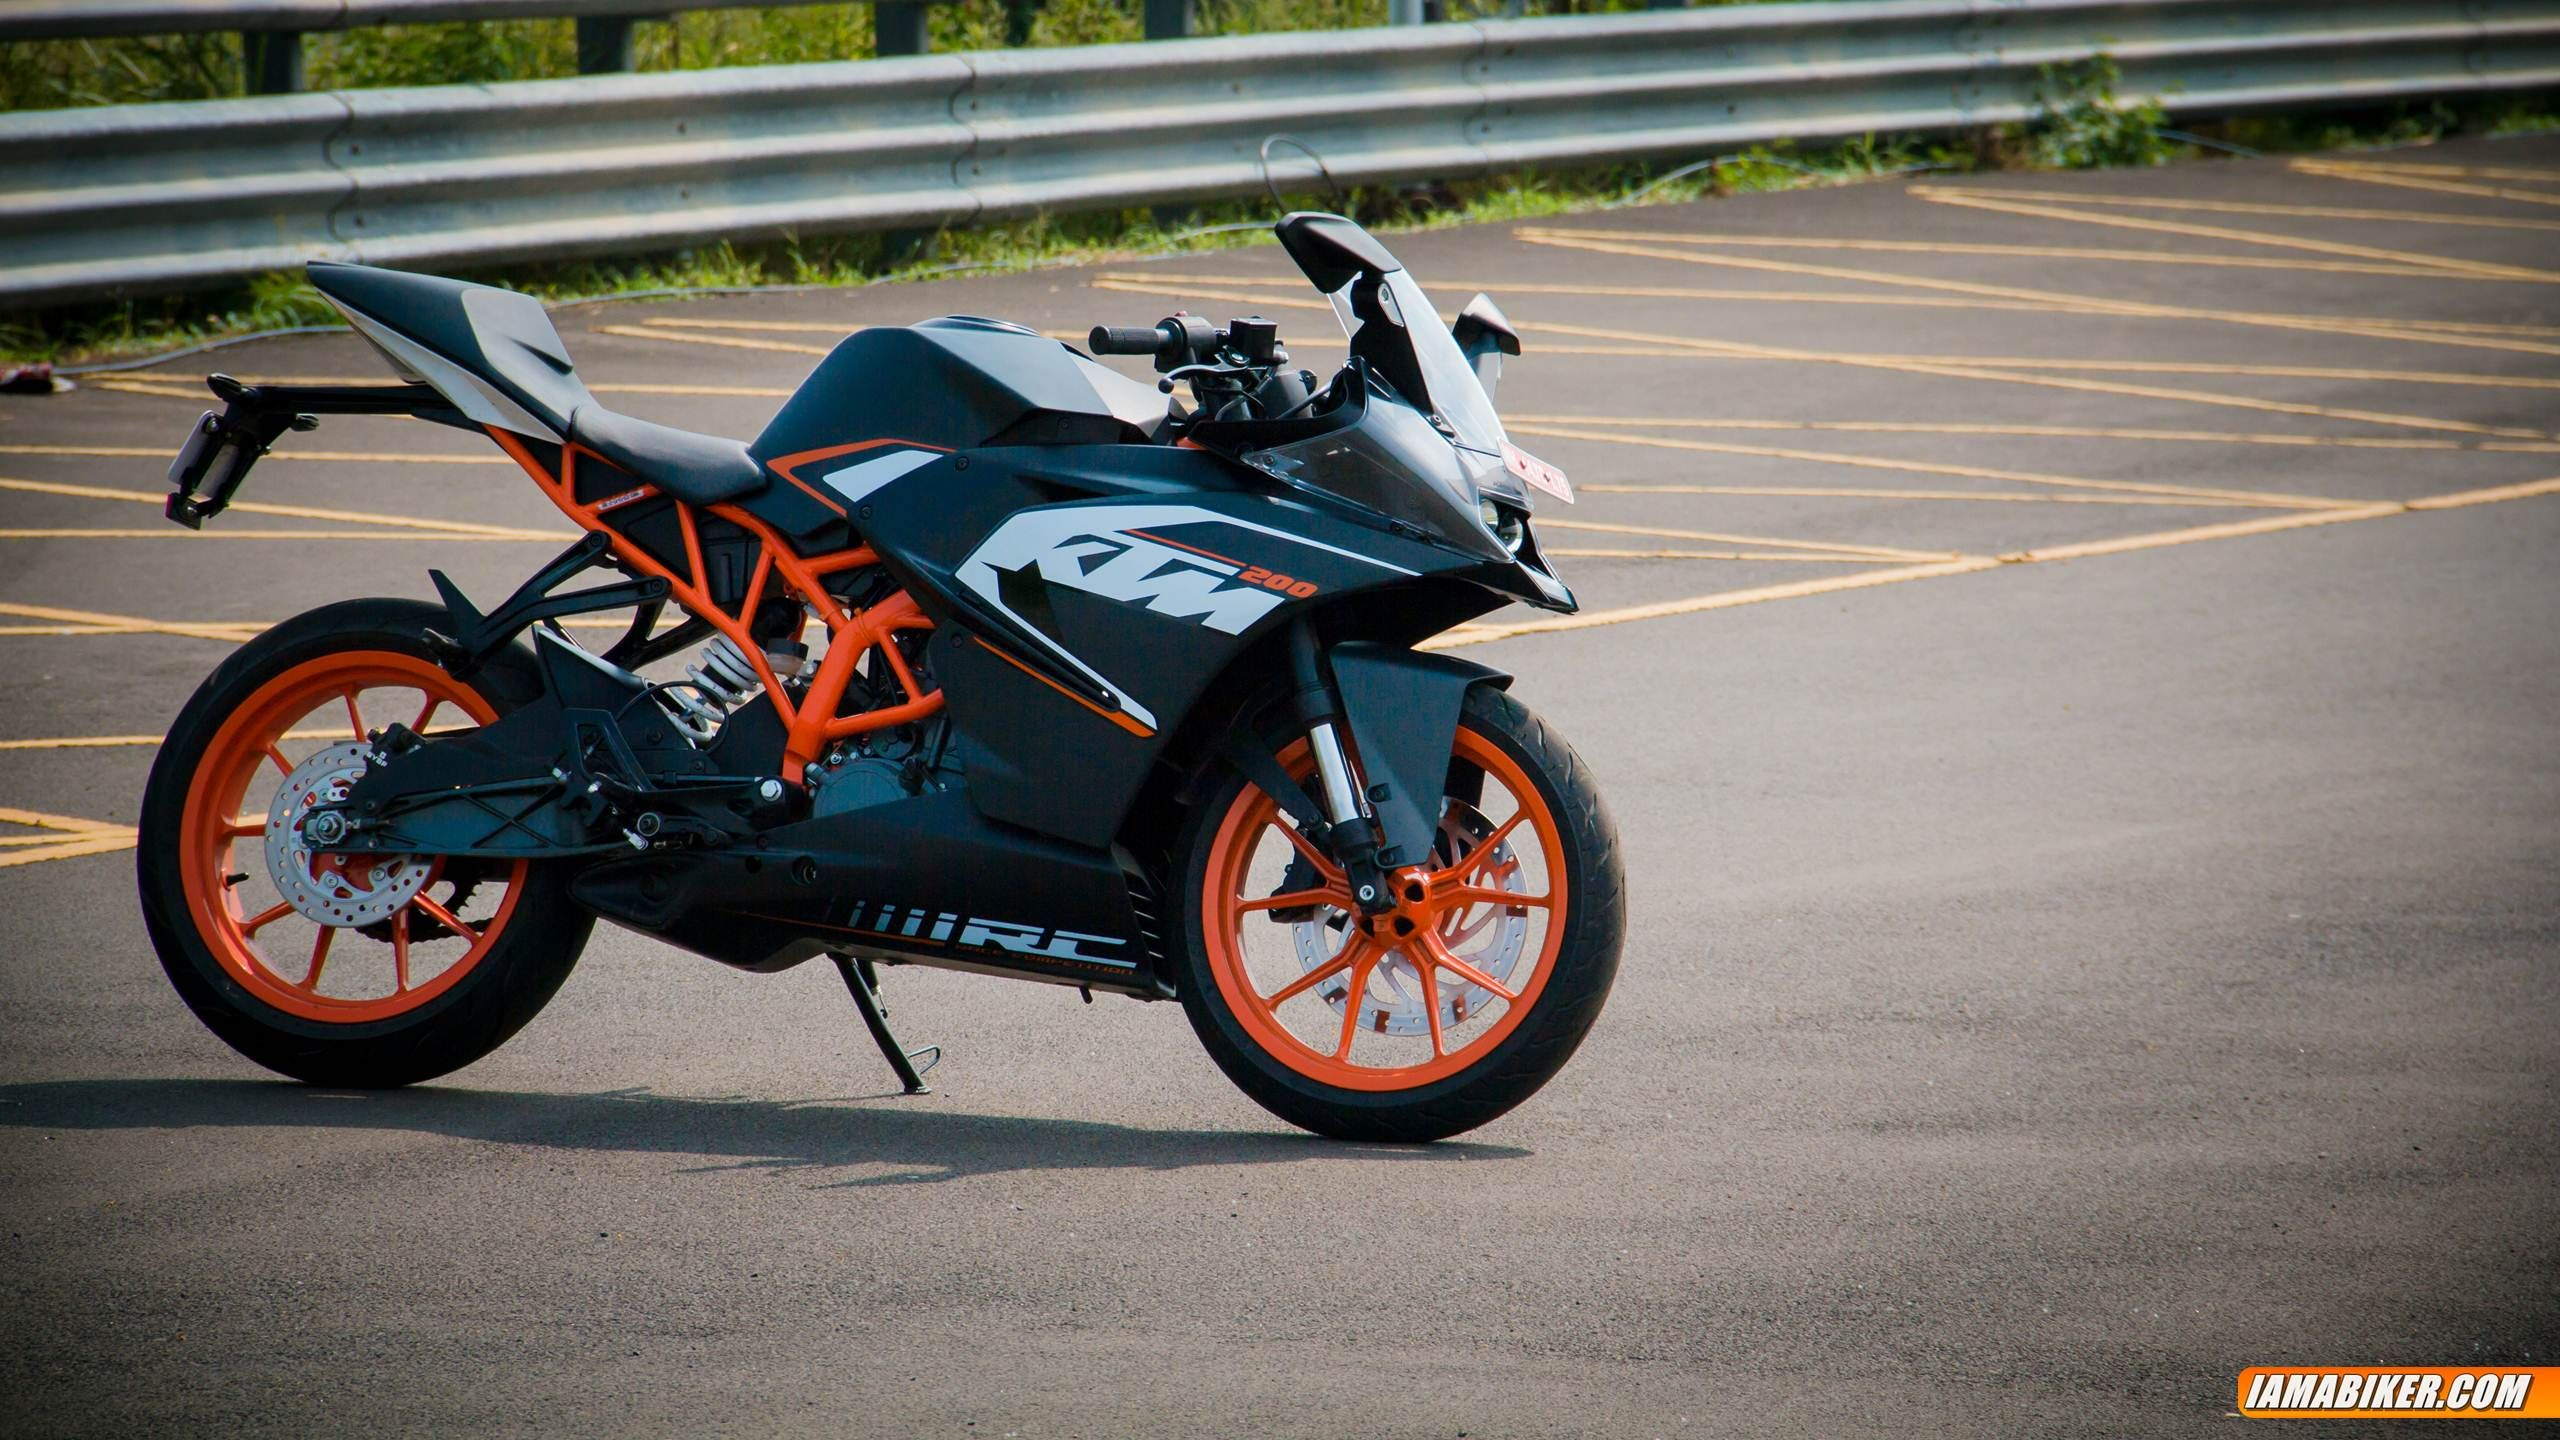 Ktm Rc 200 Wallpapers Wallpaper Cave With Images Ktm Rc Ktm